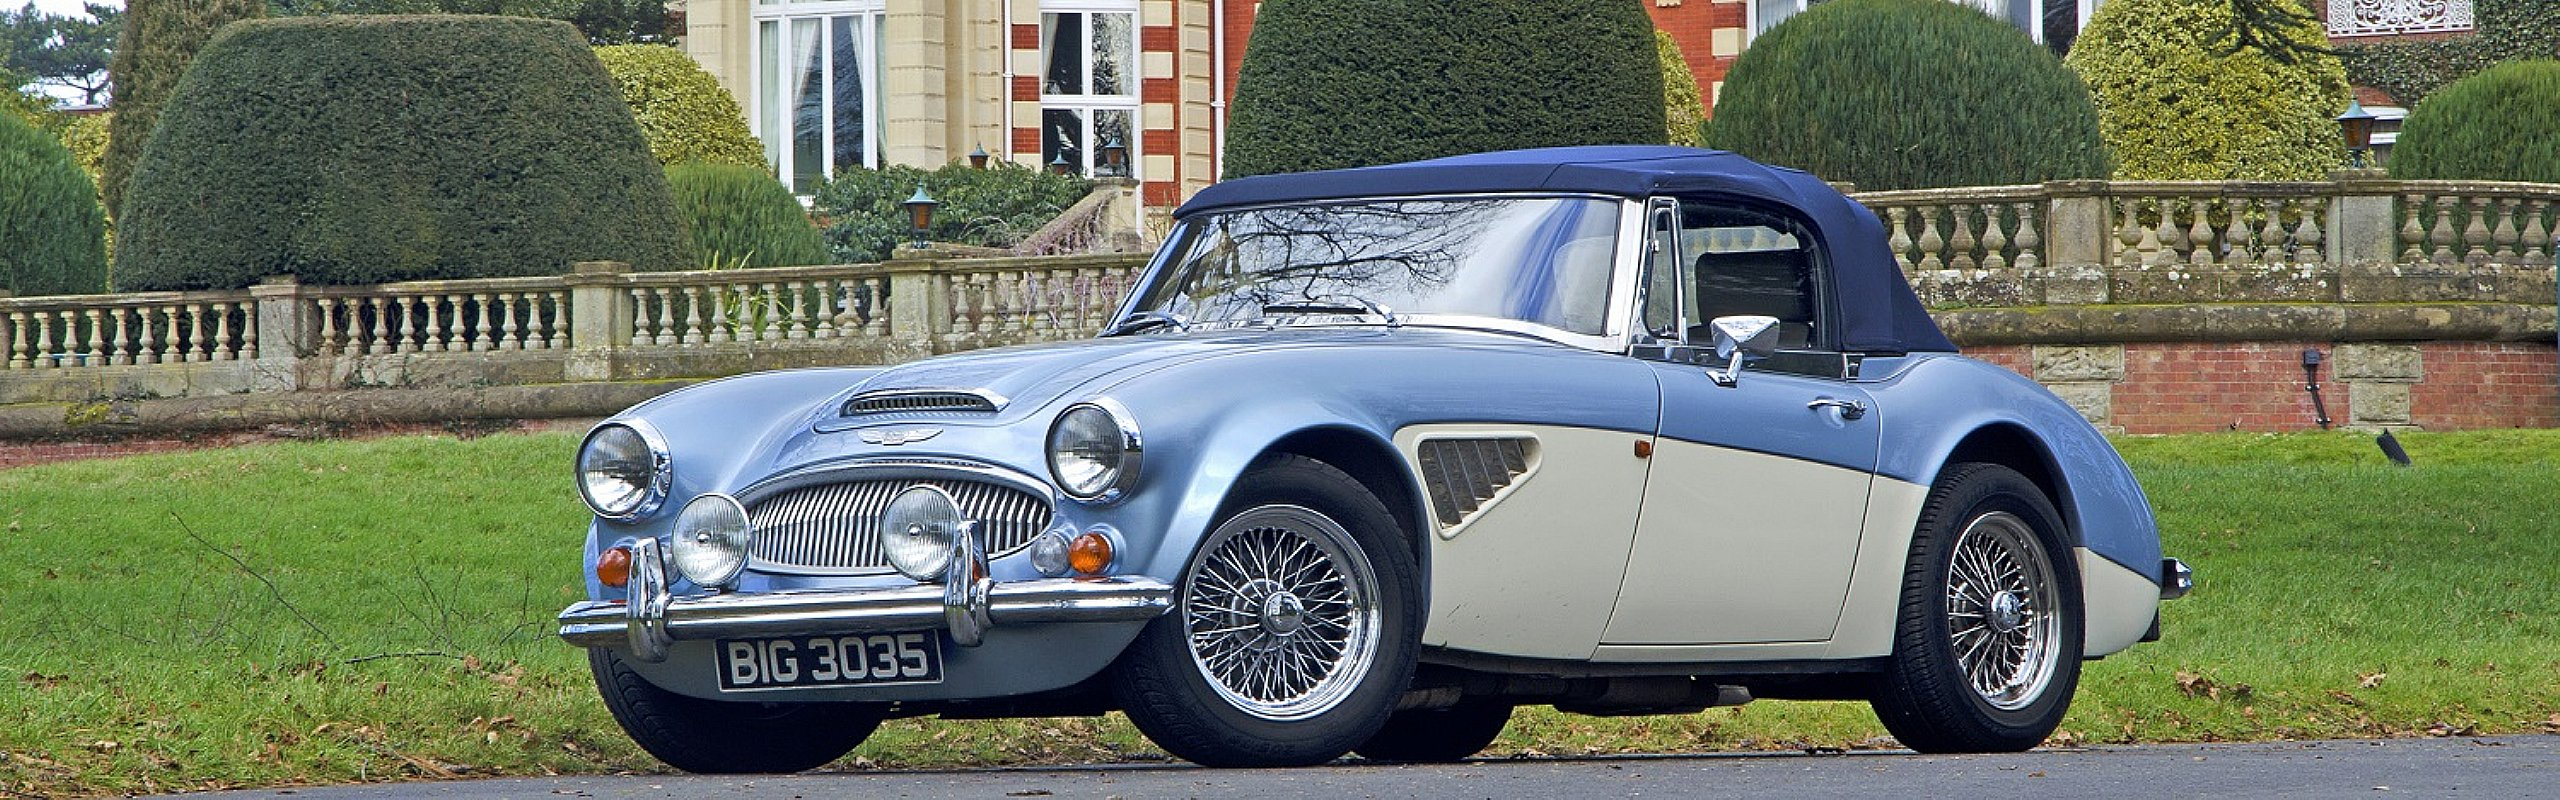 classic austin healey hire great escape classic cars great escape classic and vintage sports. Black Bedroom Furniture Sets. Home Design Ideas